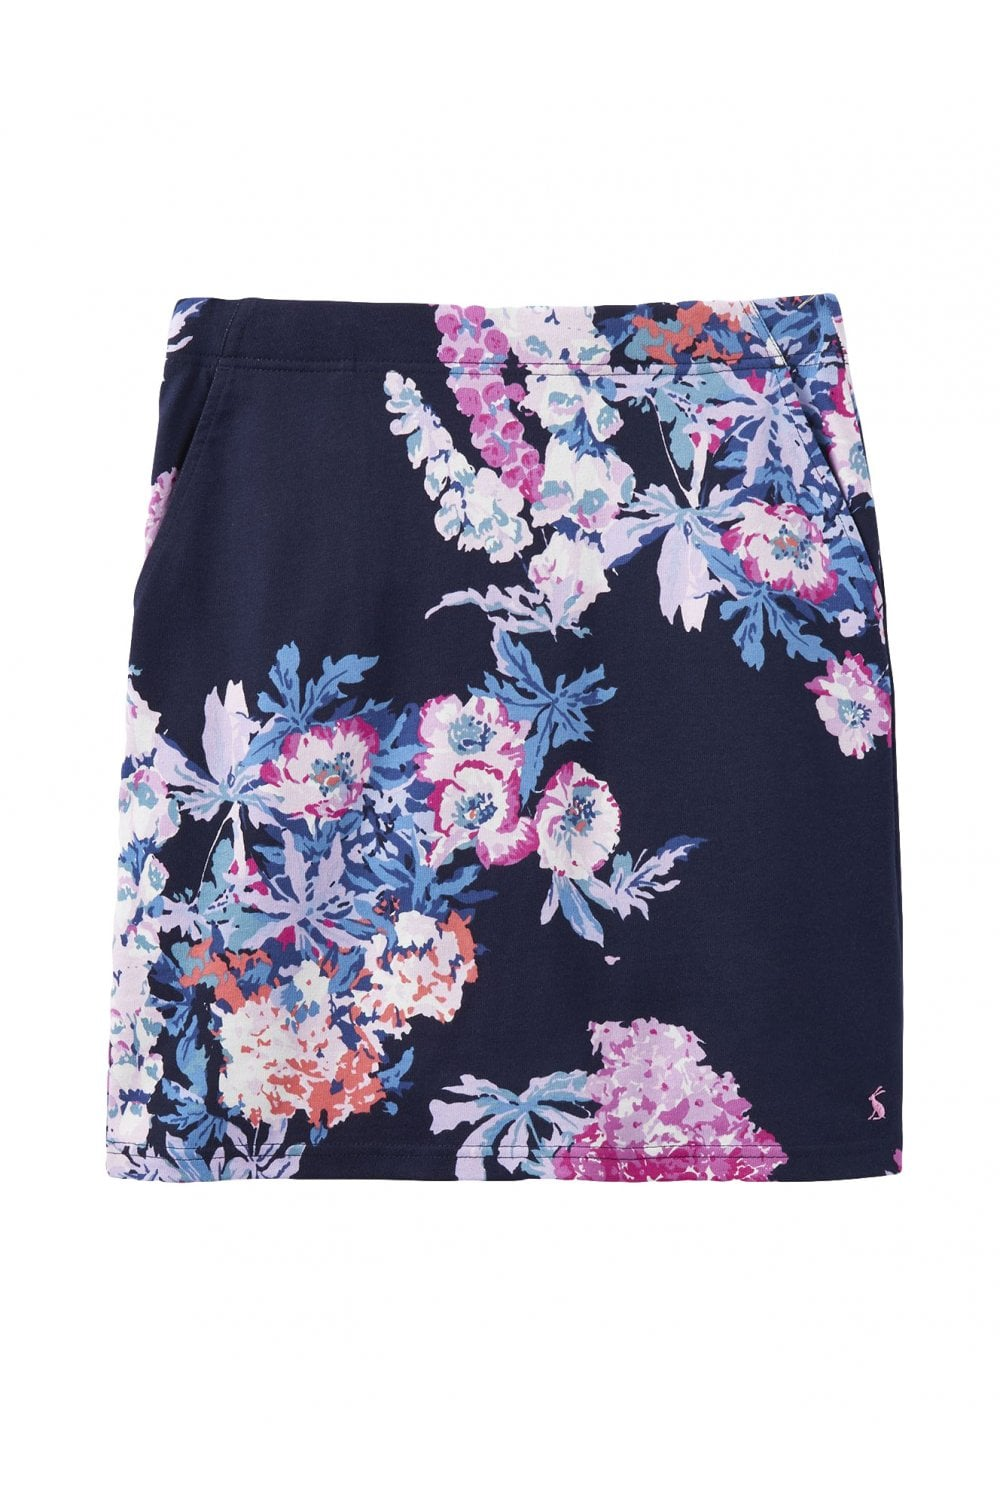 8978db0ced Joules Womens Portia Print Jersey Skirt - Navy Floral - Womenswear ...